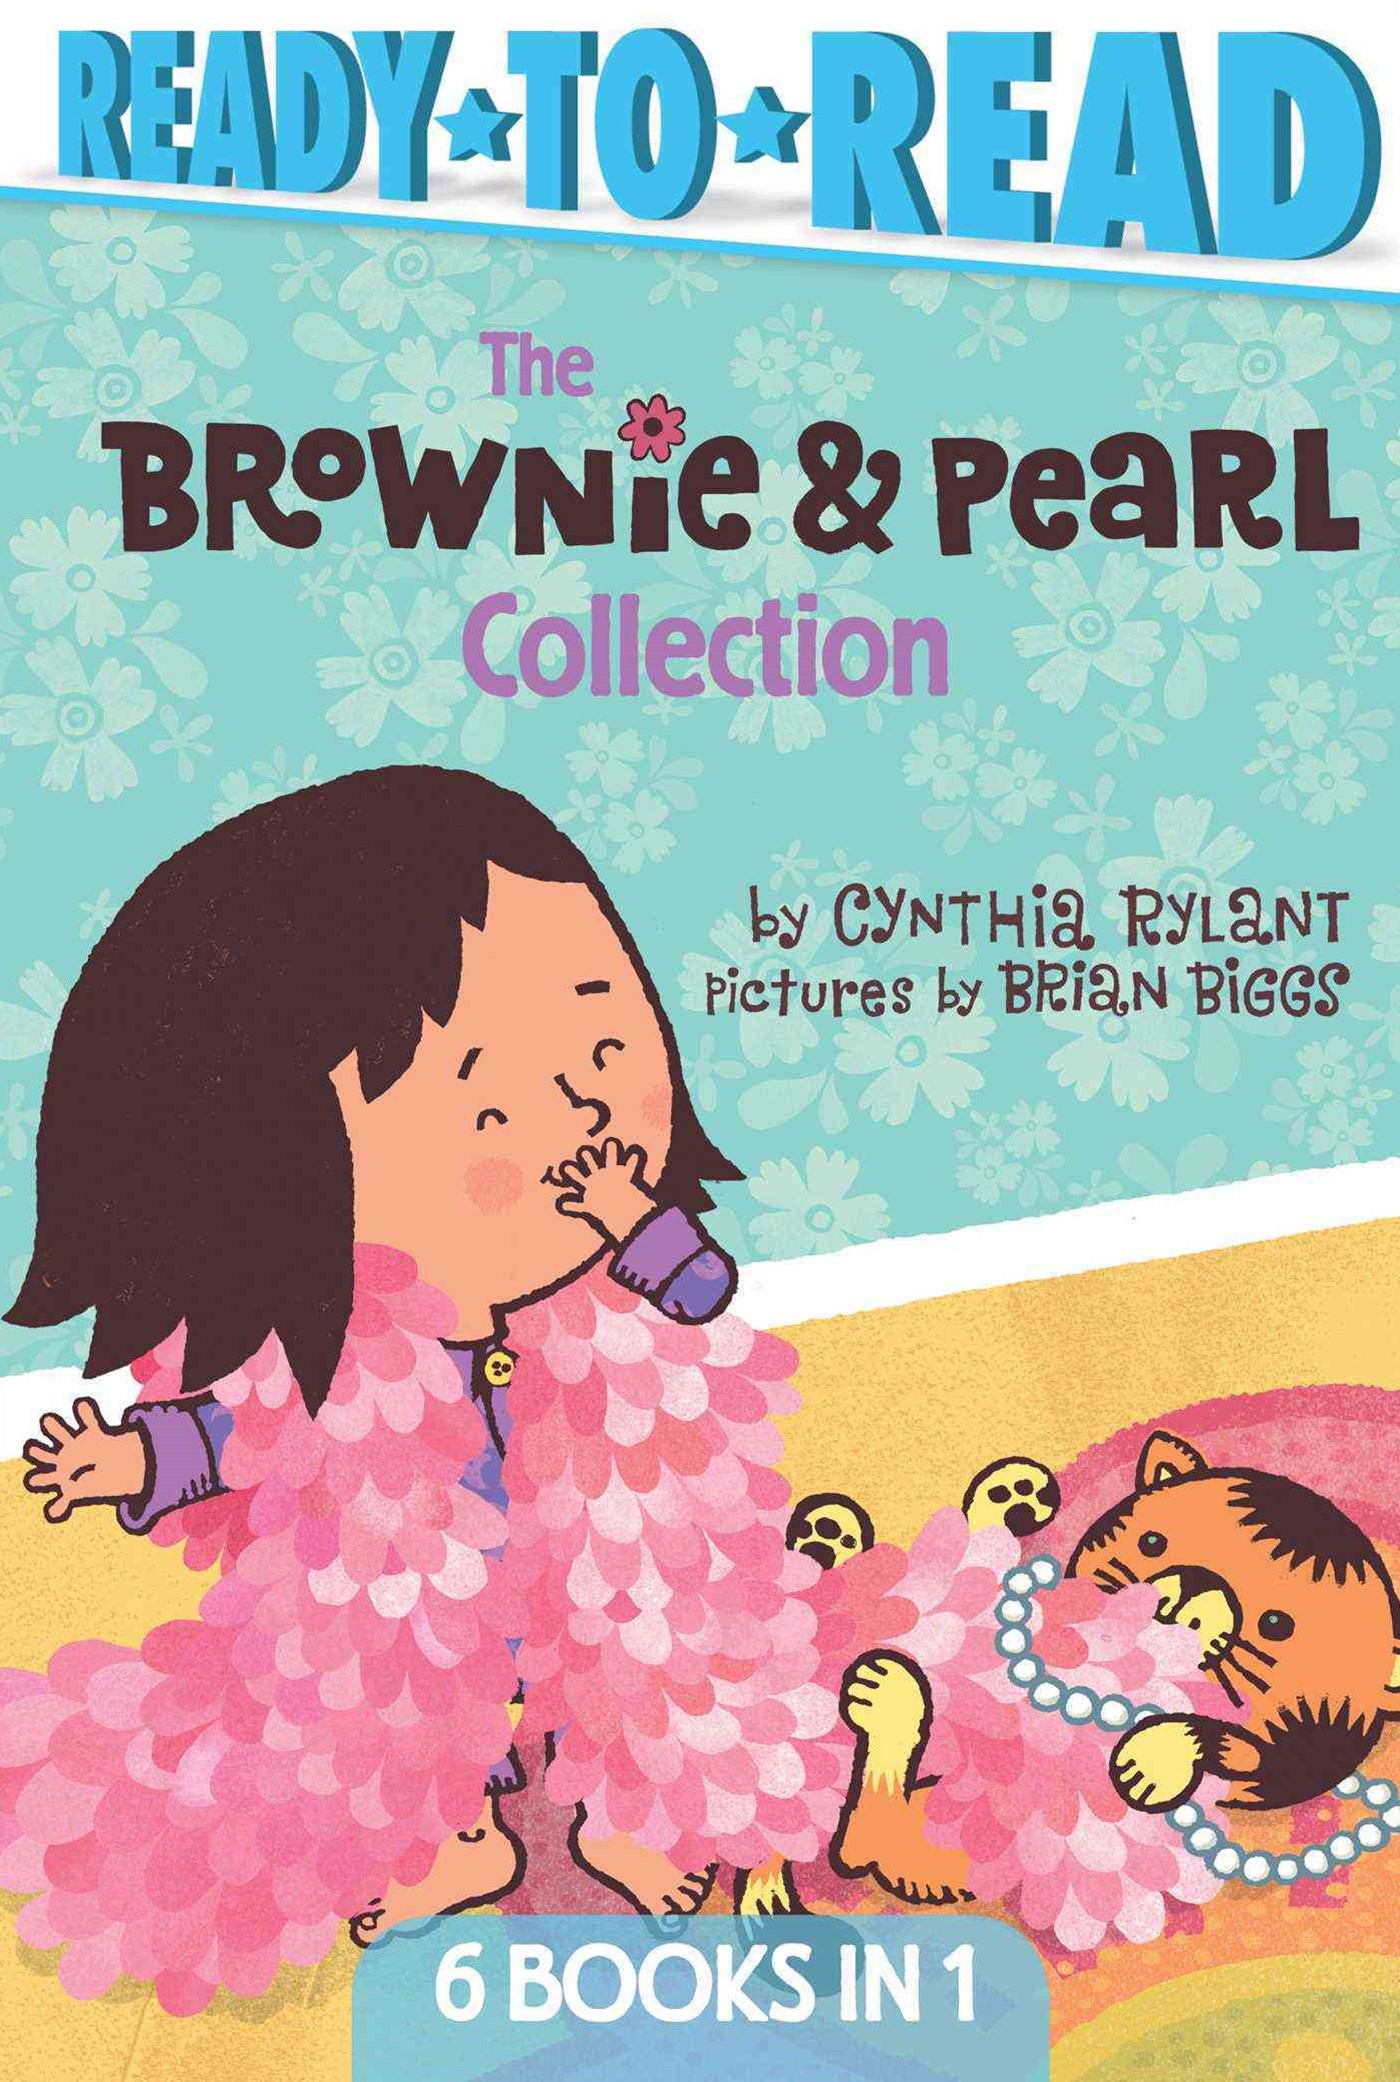 The Brownie and Pearl Ready-to-Read Collection